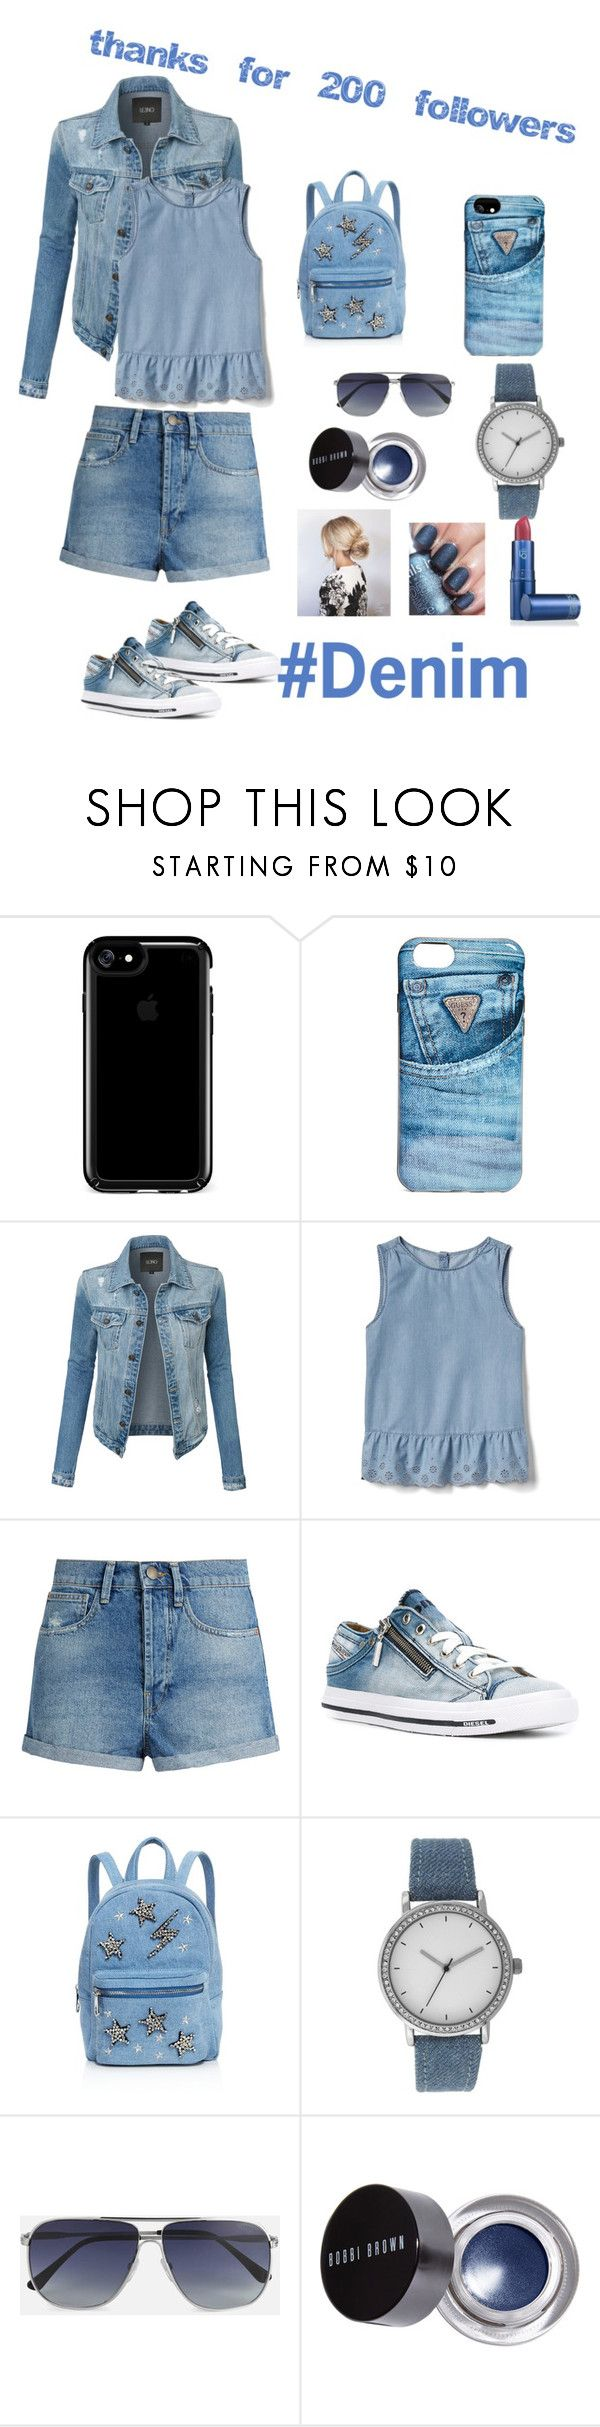 """""""Thank You so much Everyone!!"""" by rumaisa-hadia ❤ liked on Polyvore featuring Speck, GUESS, LE3NO, Gap, Raey, Diesel, Studio 33, A Classic Time Watch Co., Tom Ford and Bobbi Brown Cosmetics"""